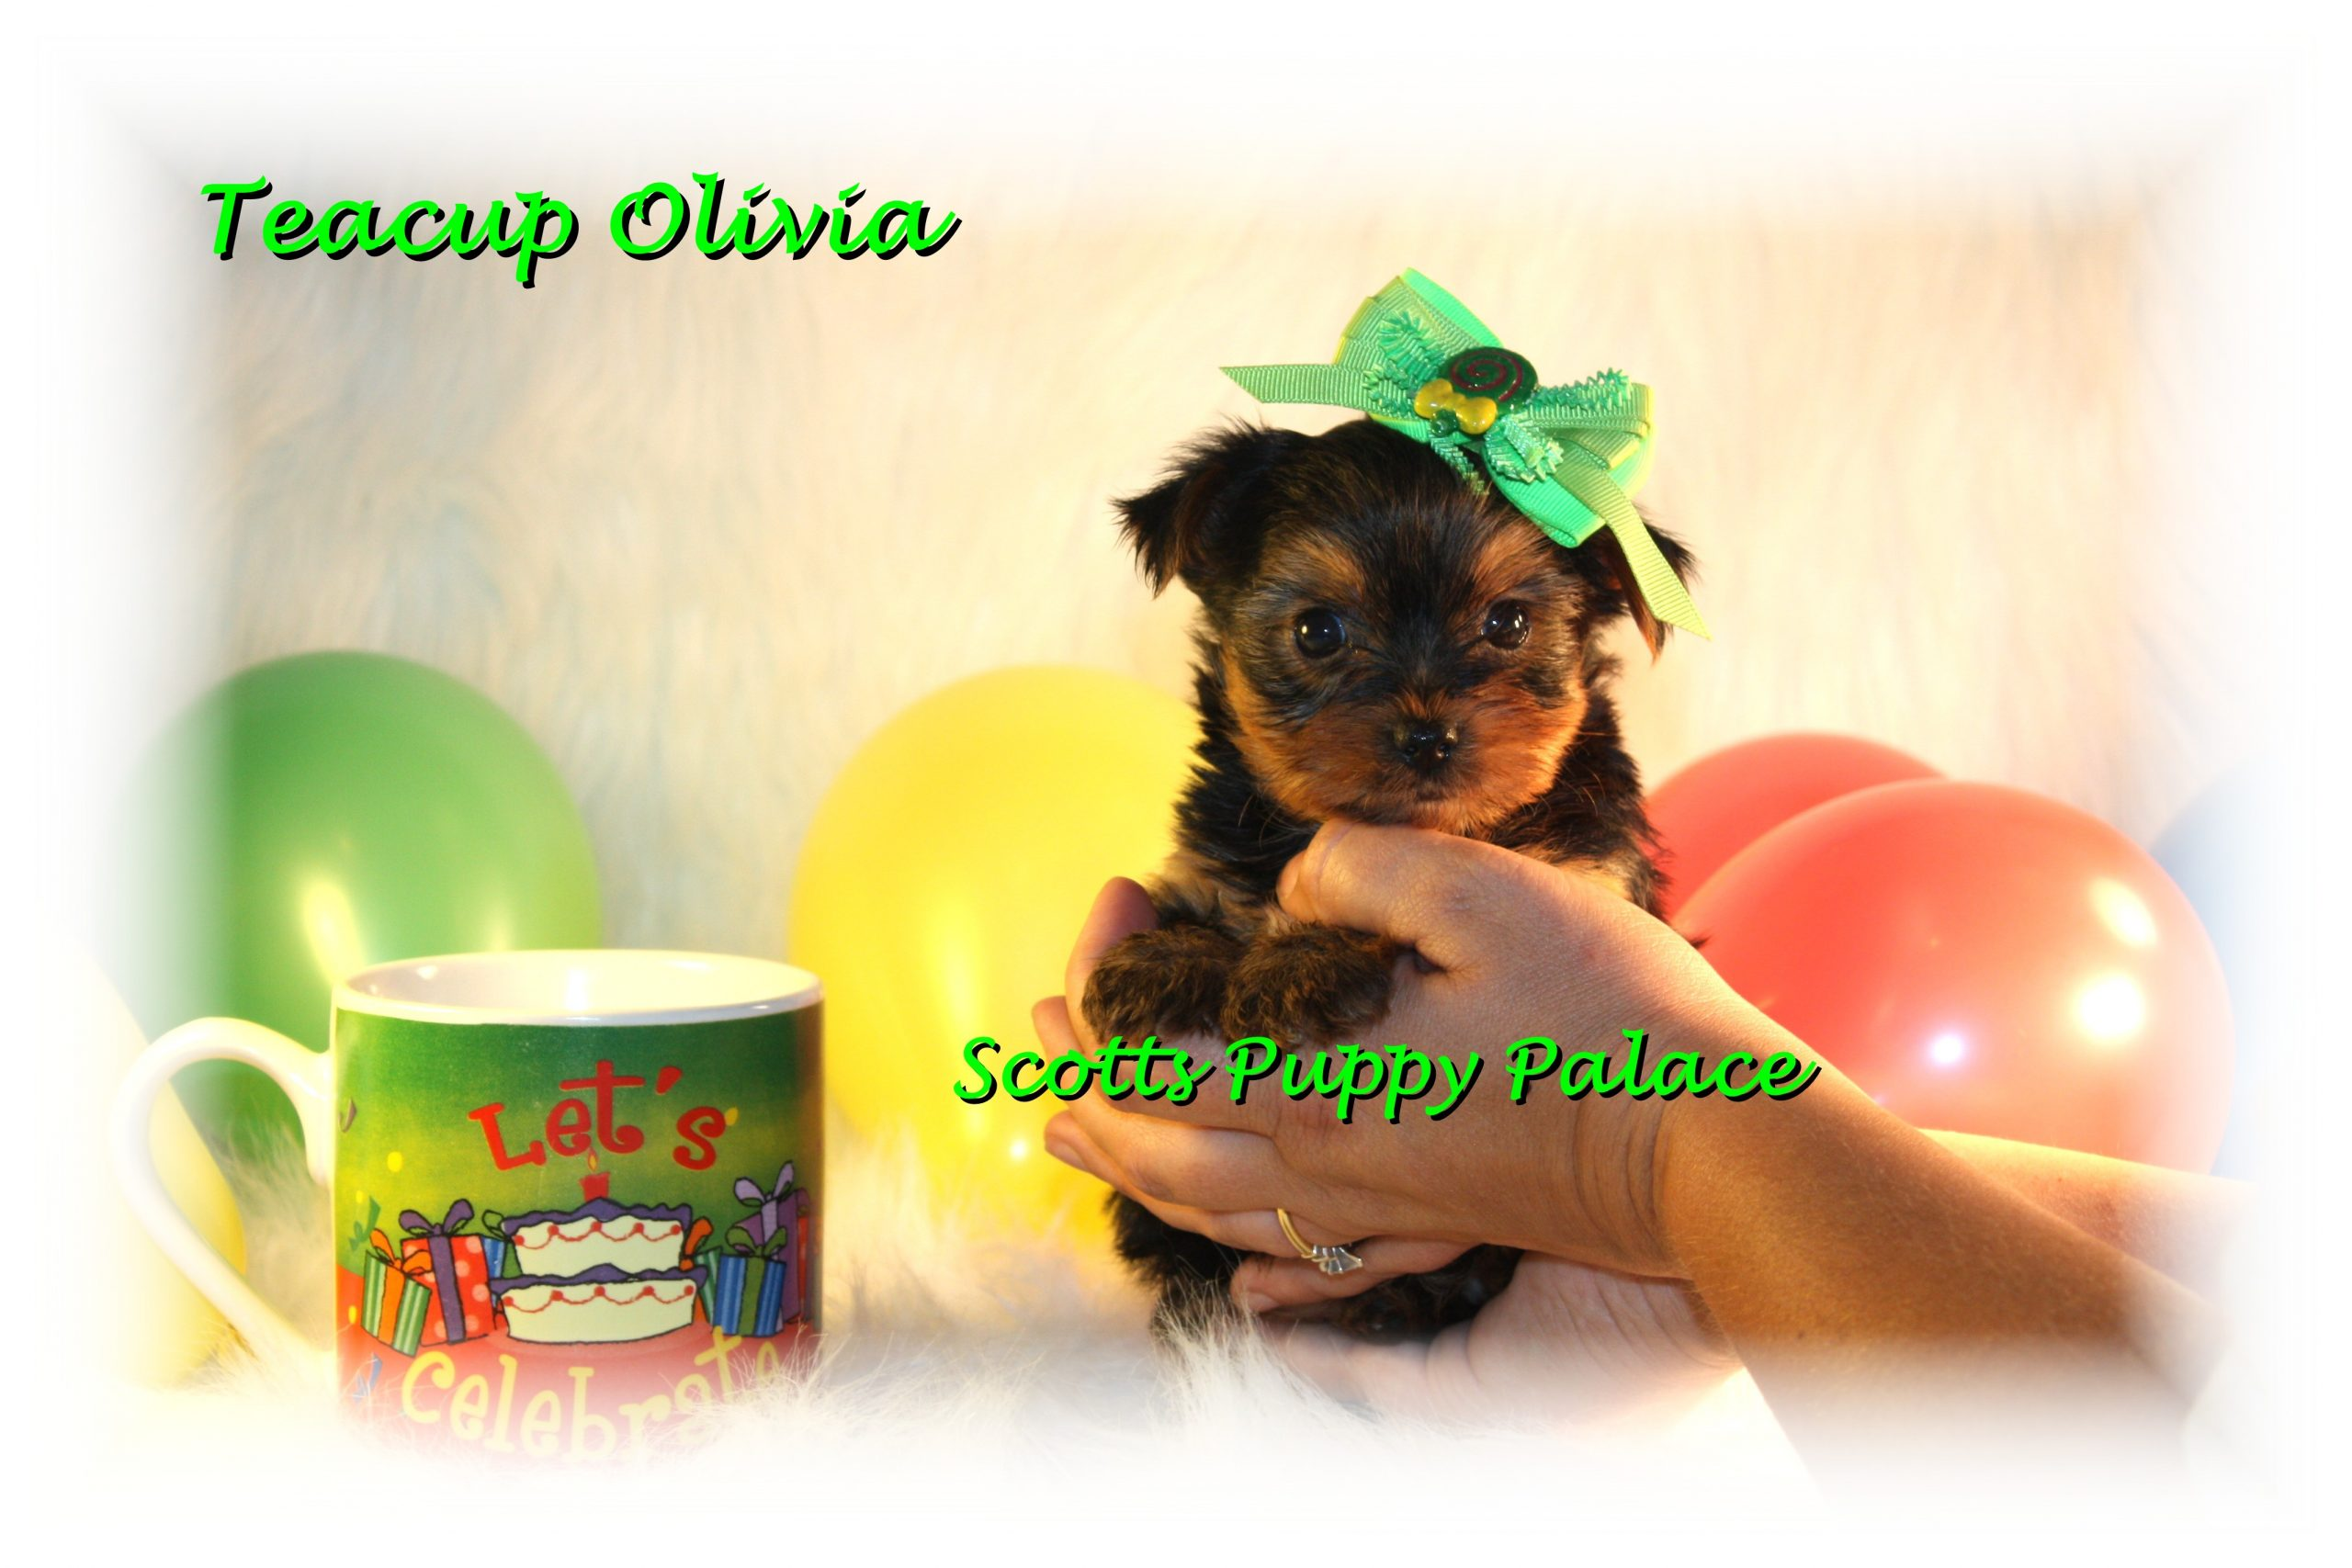 Teacup Puppies and Dogs For Sale in Grove City, Ohio